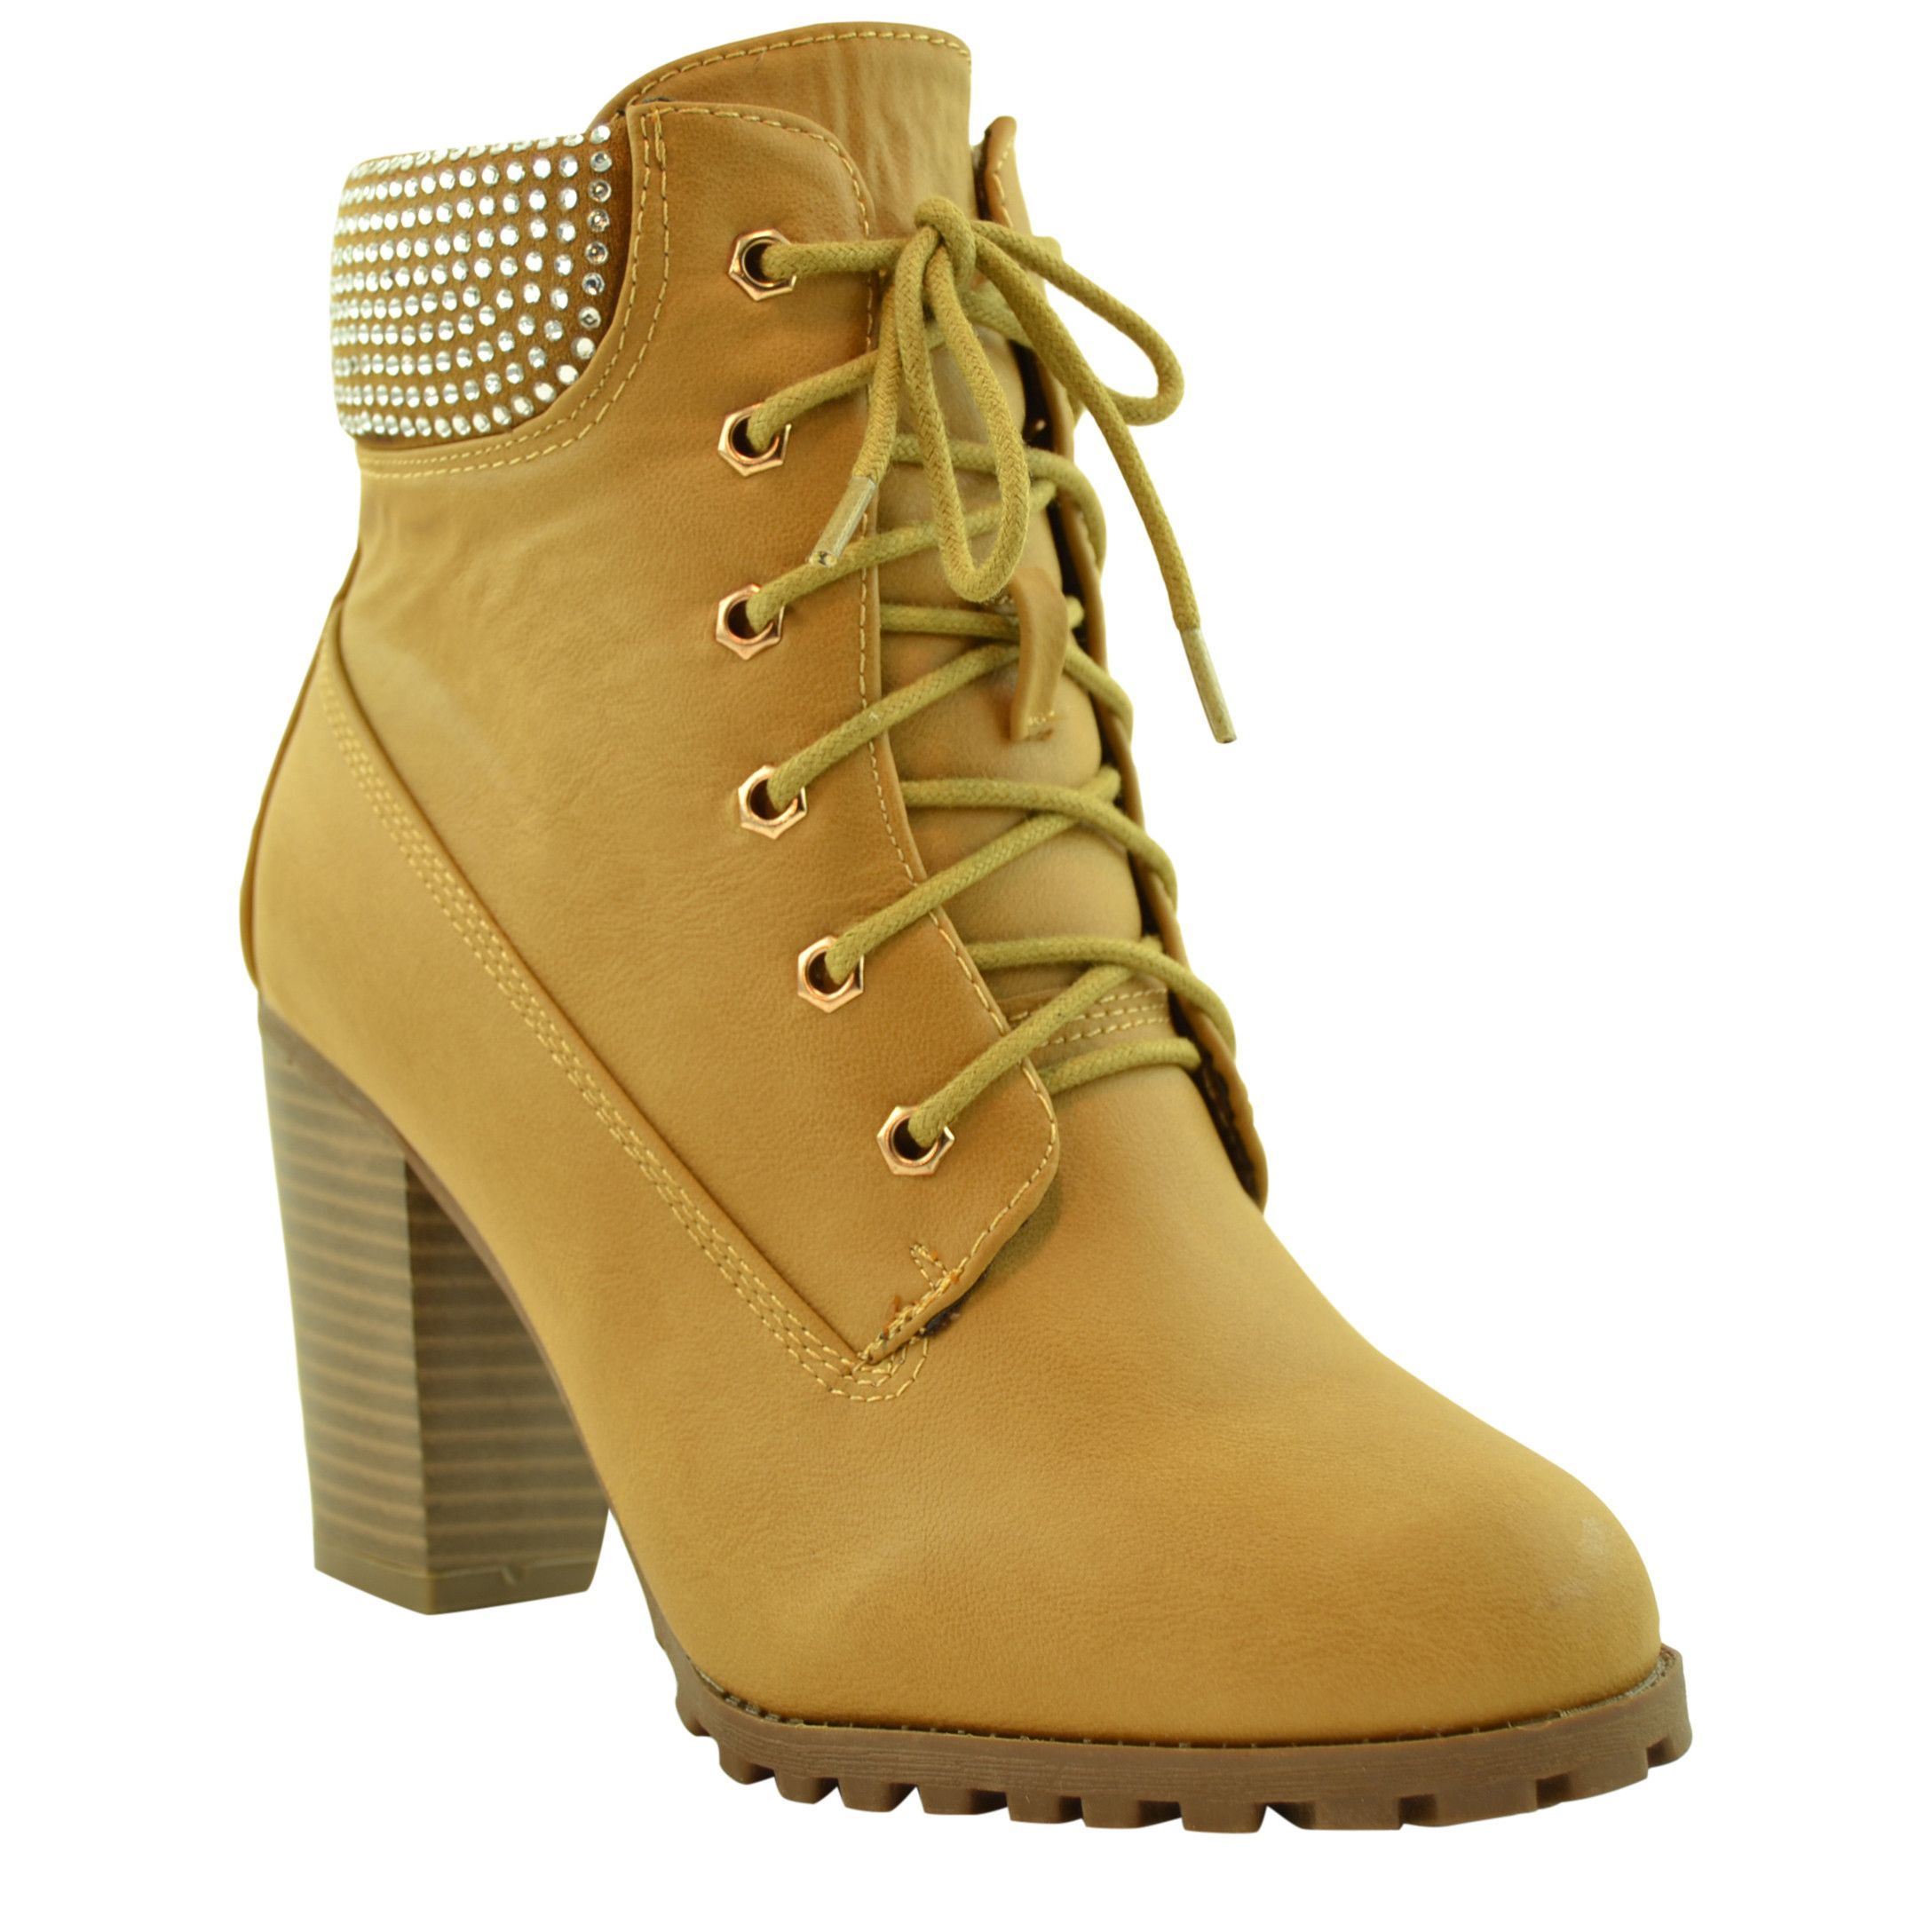 793049673c Women Camel Lace Up Chunky High Heel Construction Boot Ankle Bootie | Snow  Boots | Shoes, Ugg boots clearance, Boots